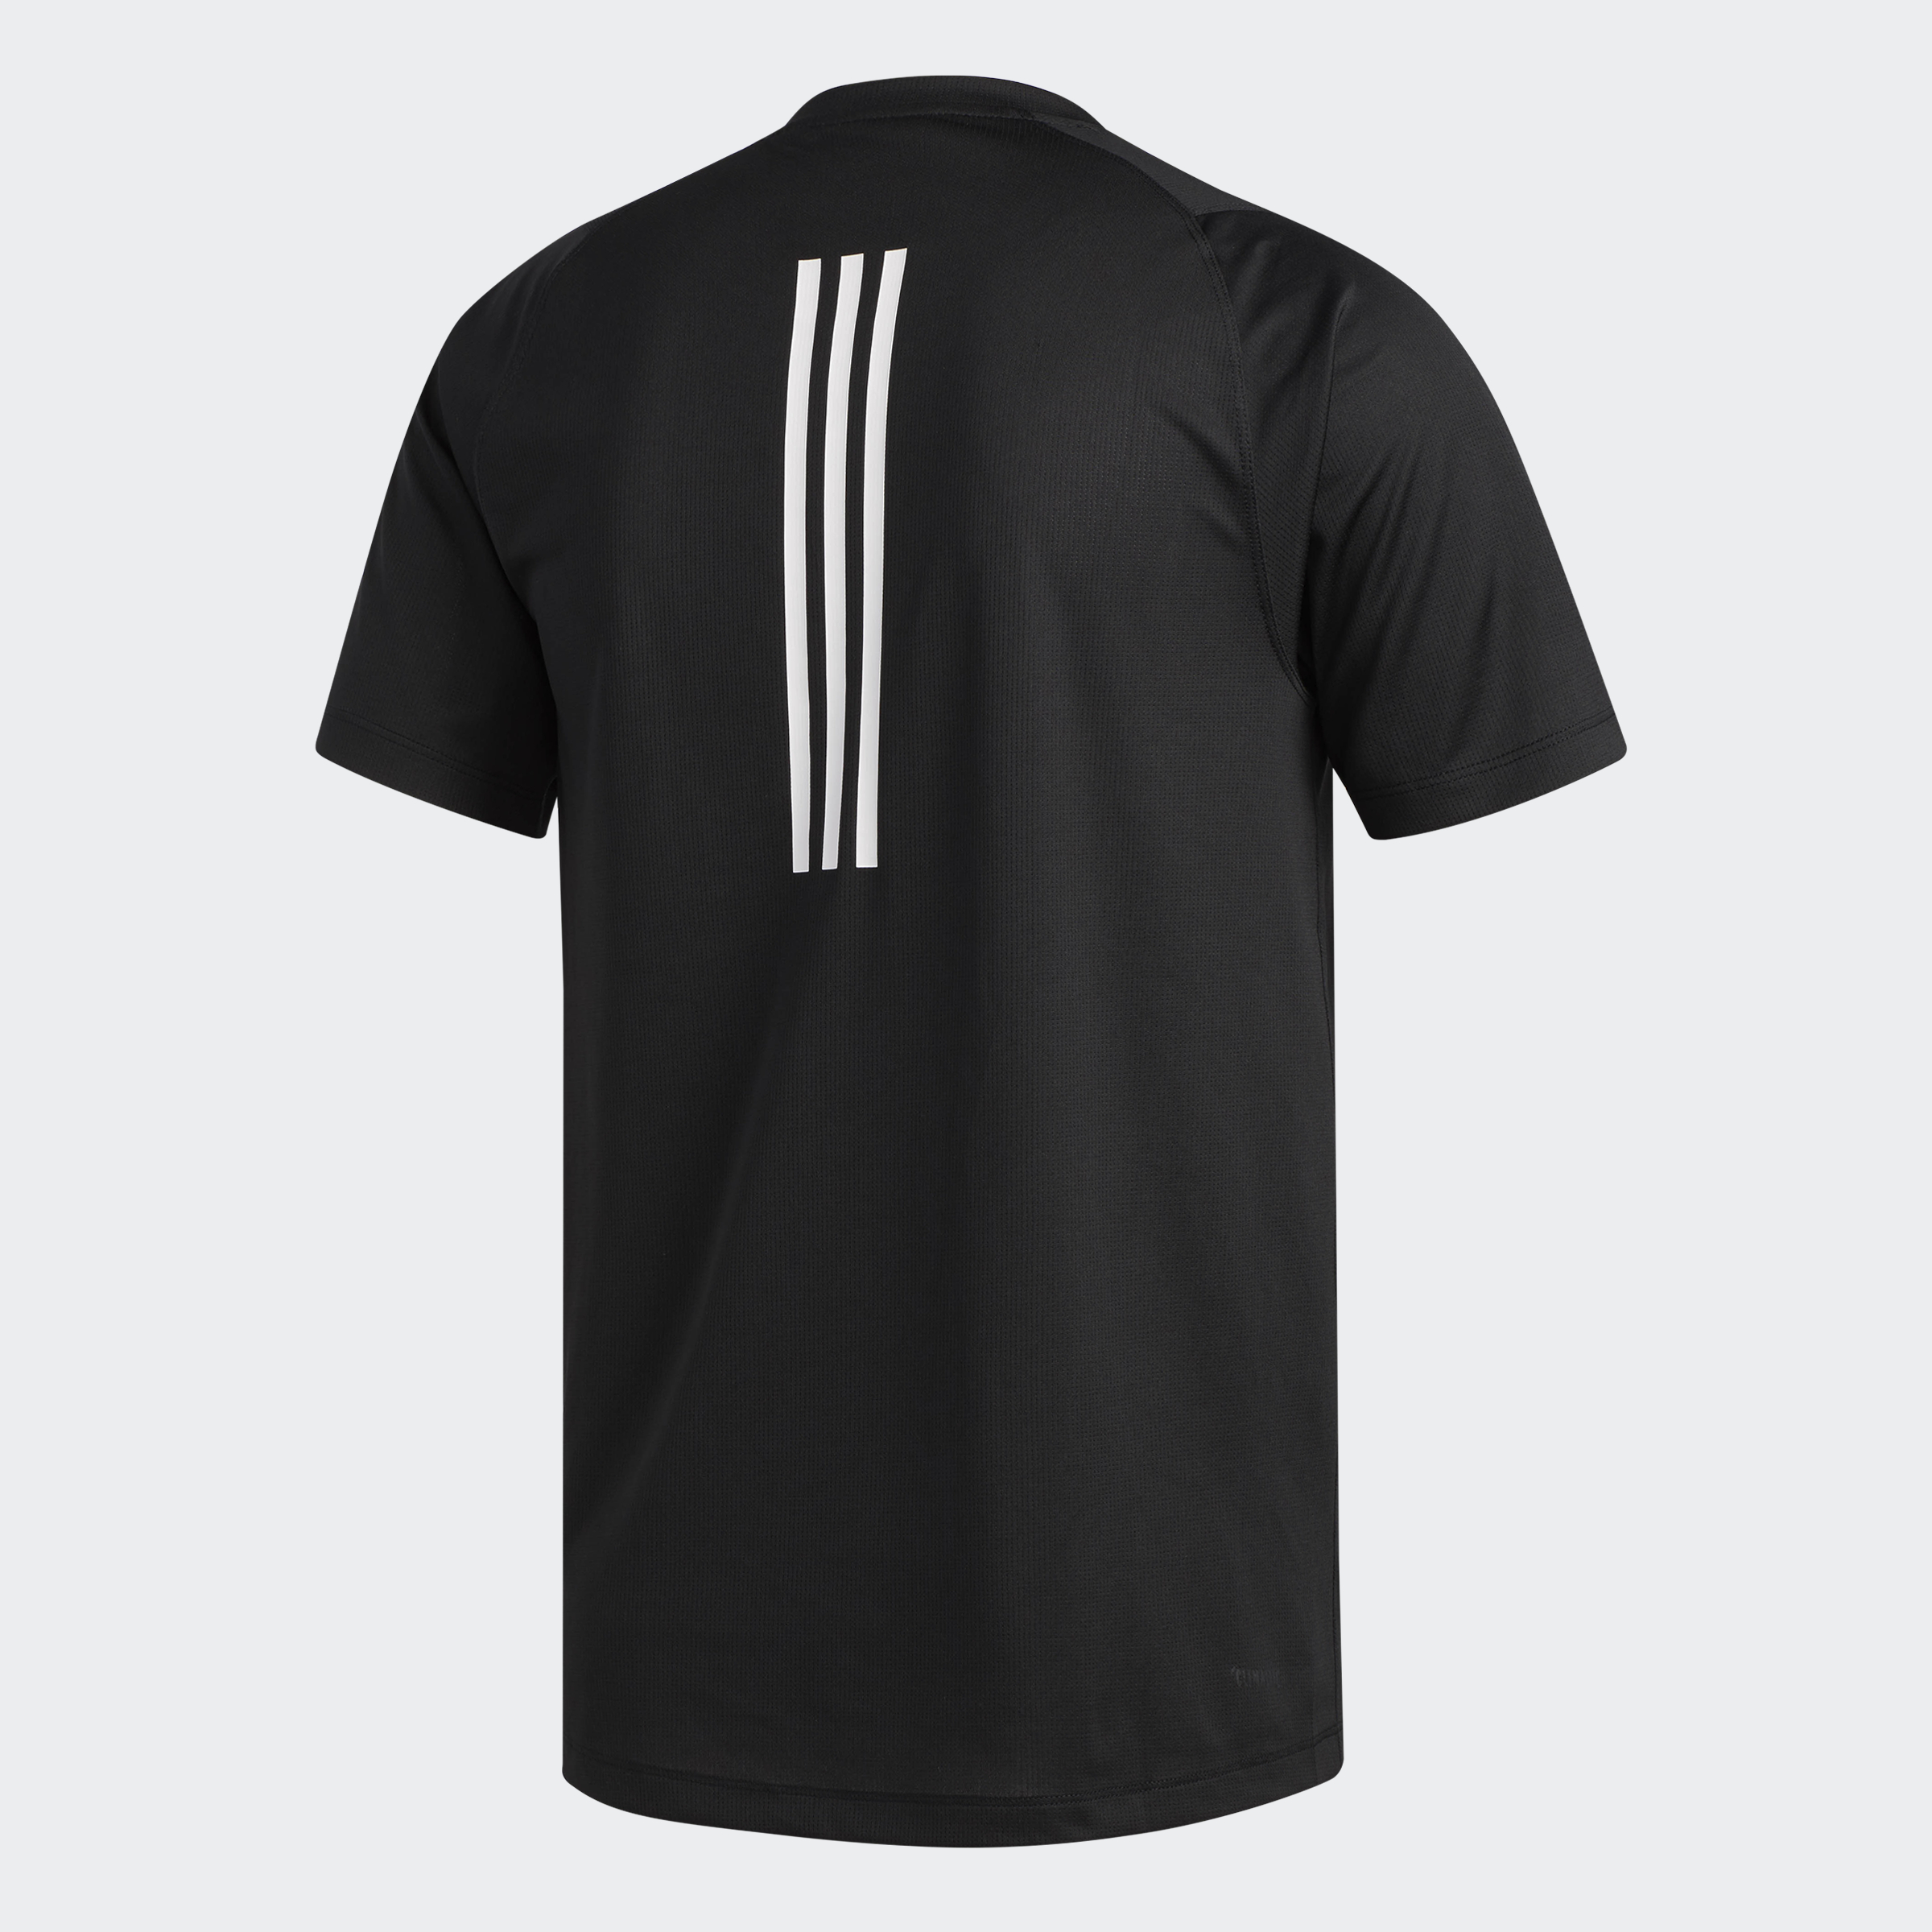 adidas-FreeLift-Sport-Fitted-3-Stripes-Tee-Men-039-s-Shirts miniature 23